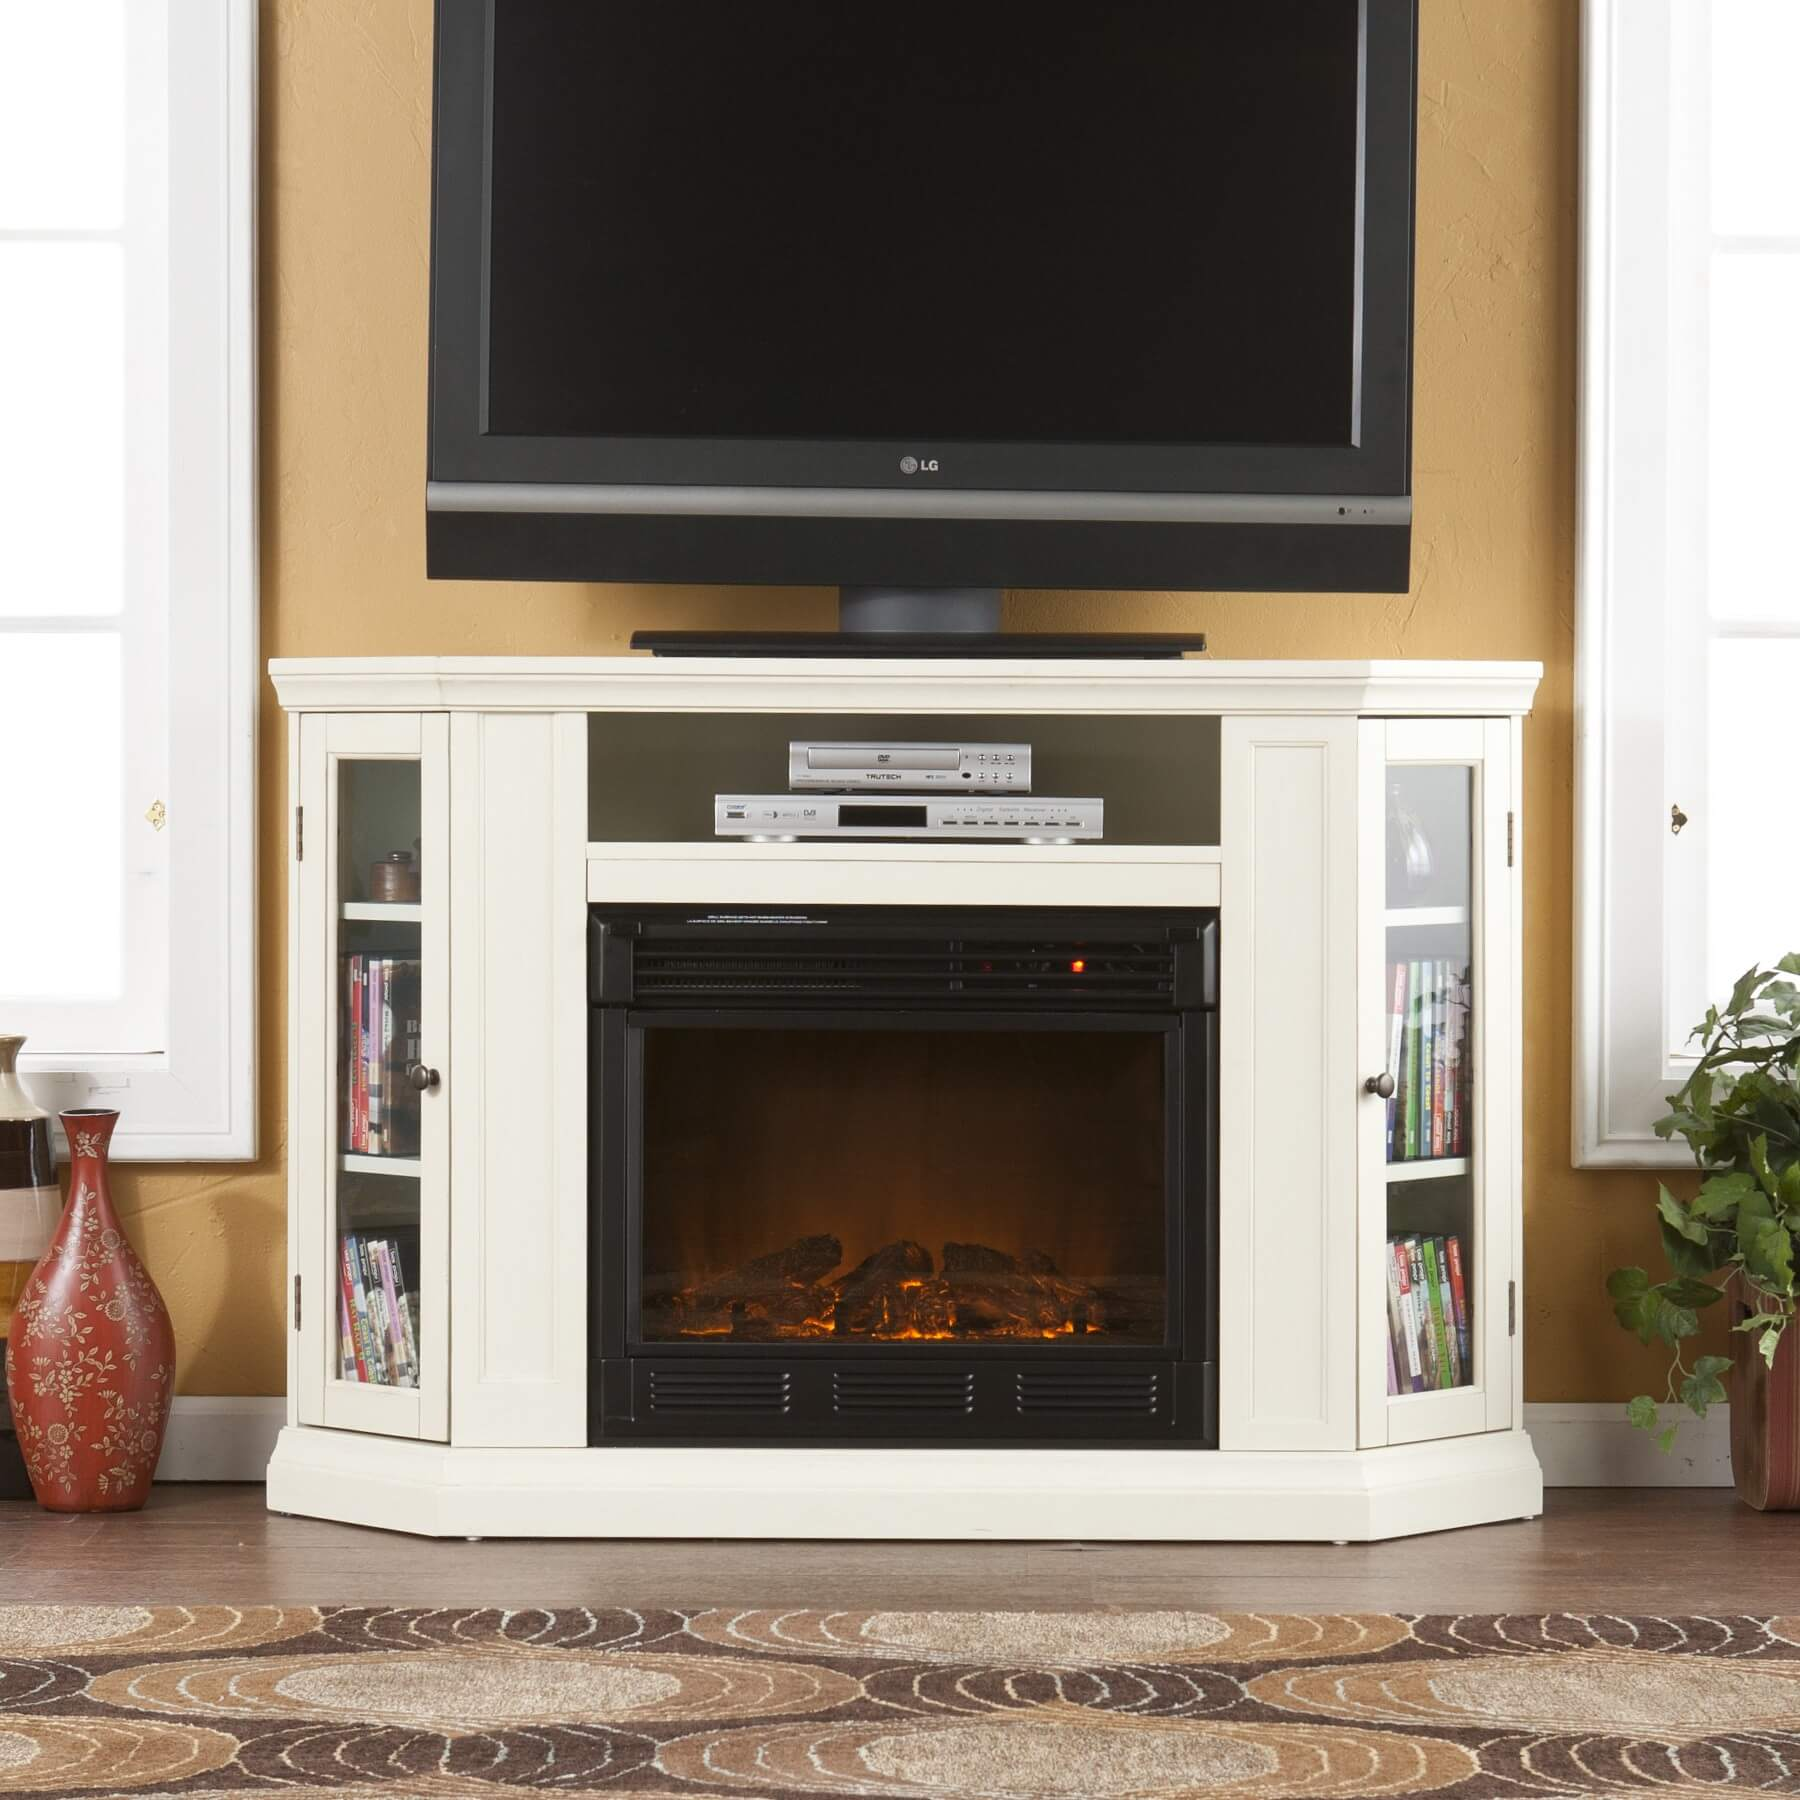 Lareiras el tricas design tipos e funcionalidades - Choosing the right white electric fireplace for you ...